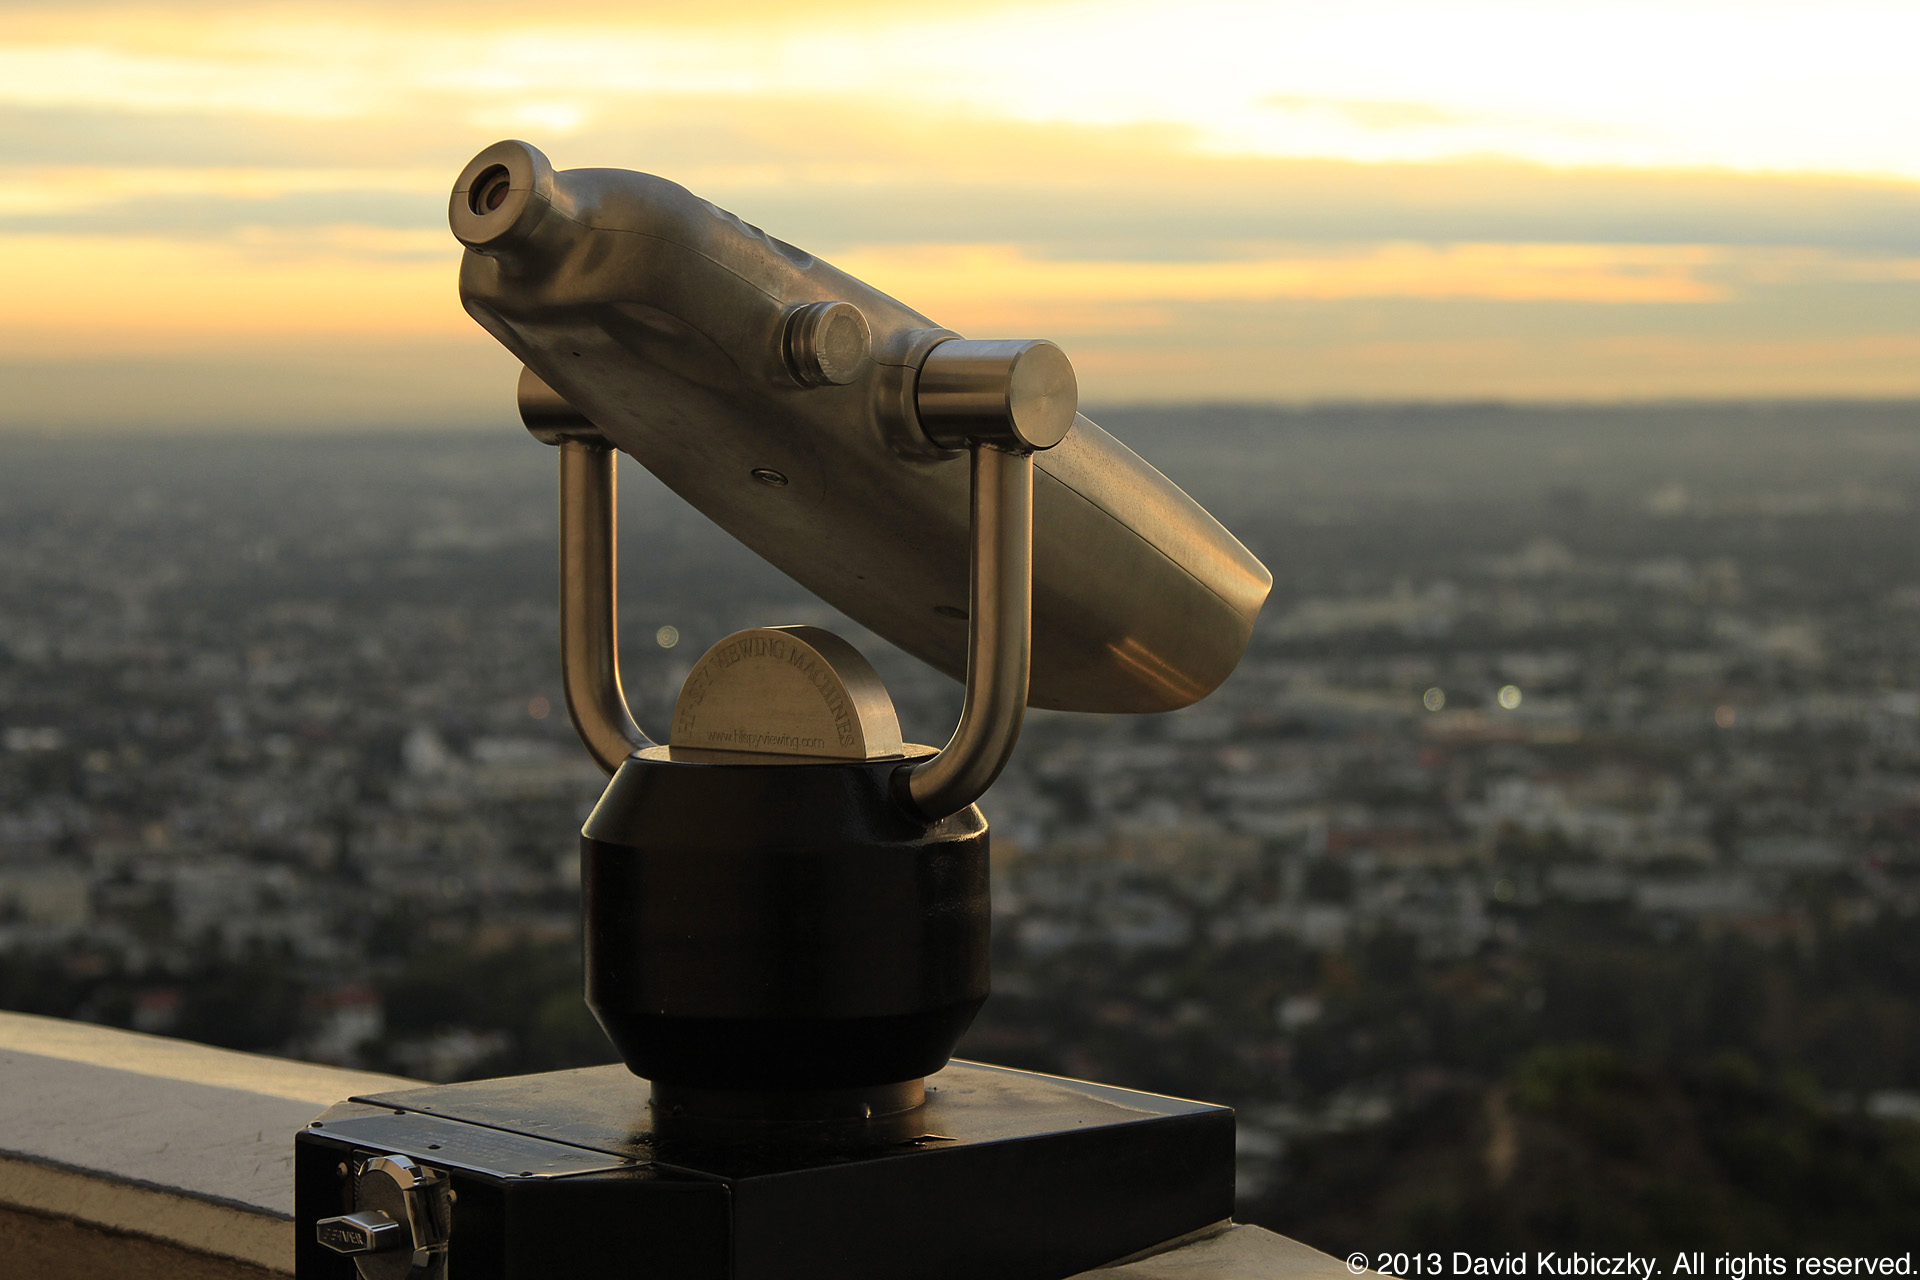 I just love these Hi Spy Viewing scopes.